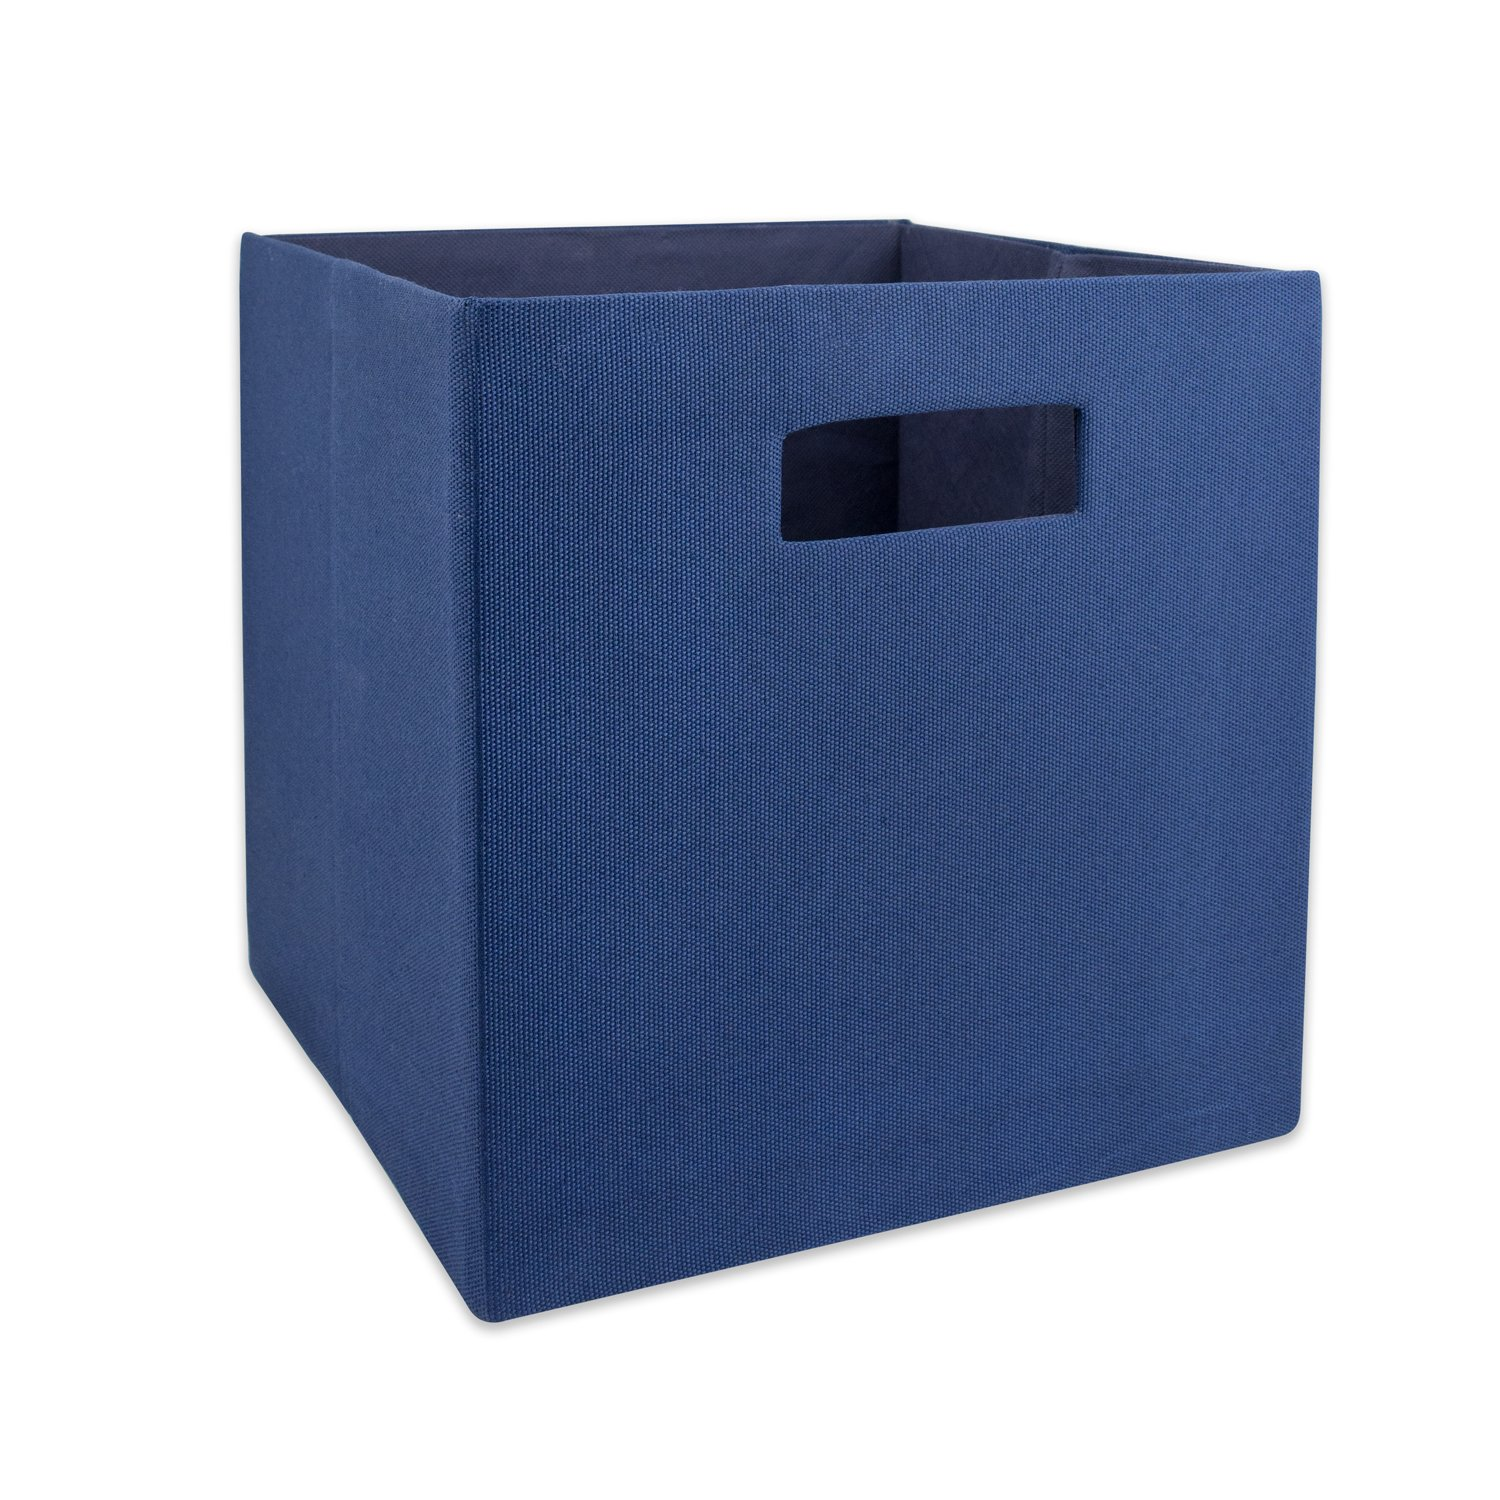 "DII Hard Sided Collapsible Fabric Storage Container for Nursery, Offices, & Home Organization, (11x11x11"") - Solid Nautical Blue"